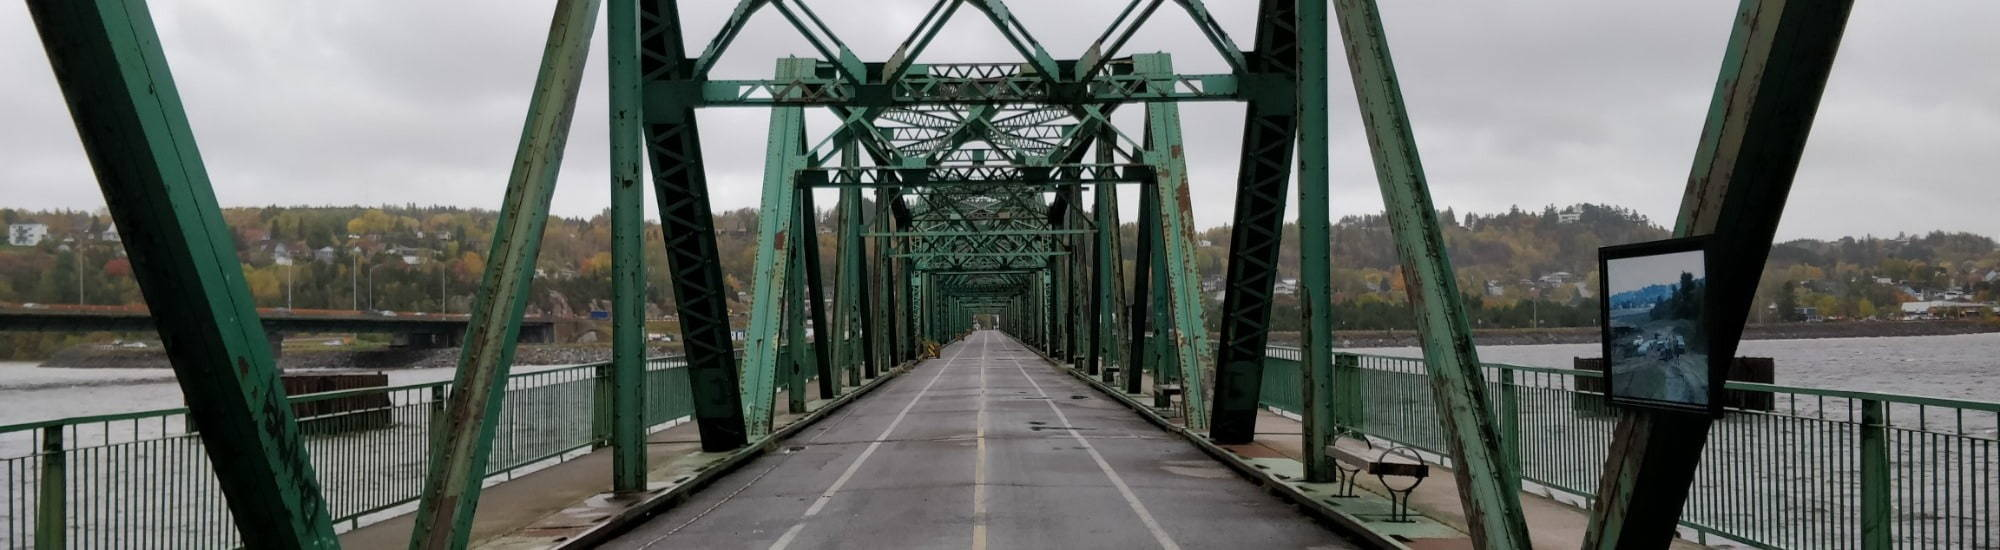 Background Image: Bridge